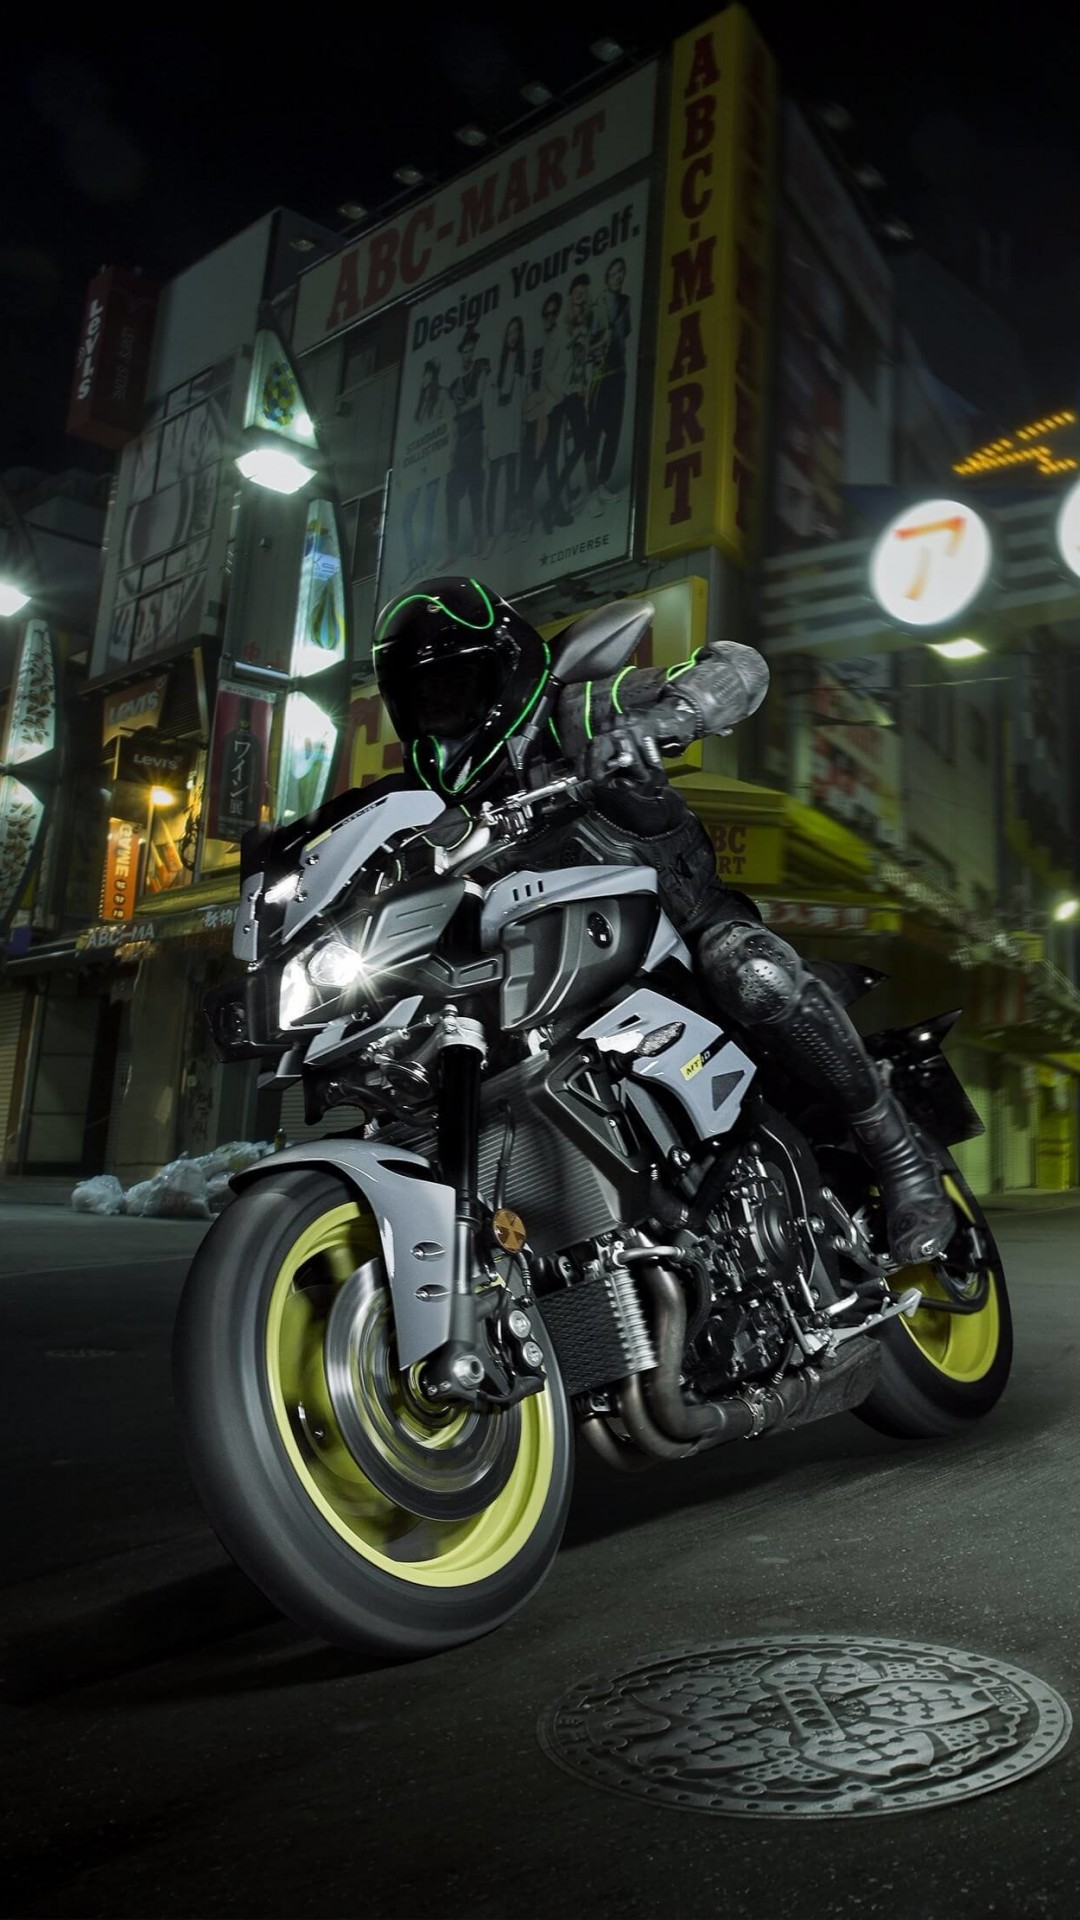 Yamaha MT-10 Superbike Wallpaper for HTC One